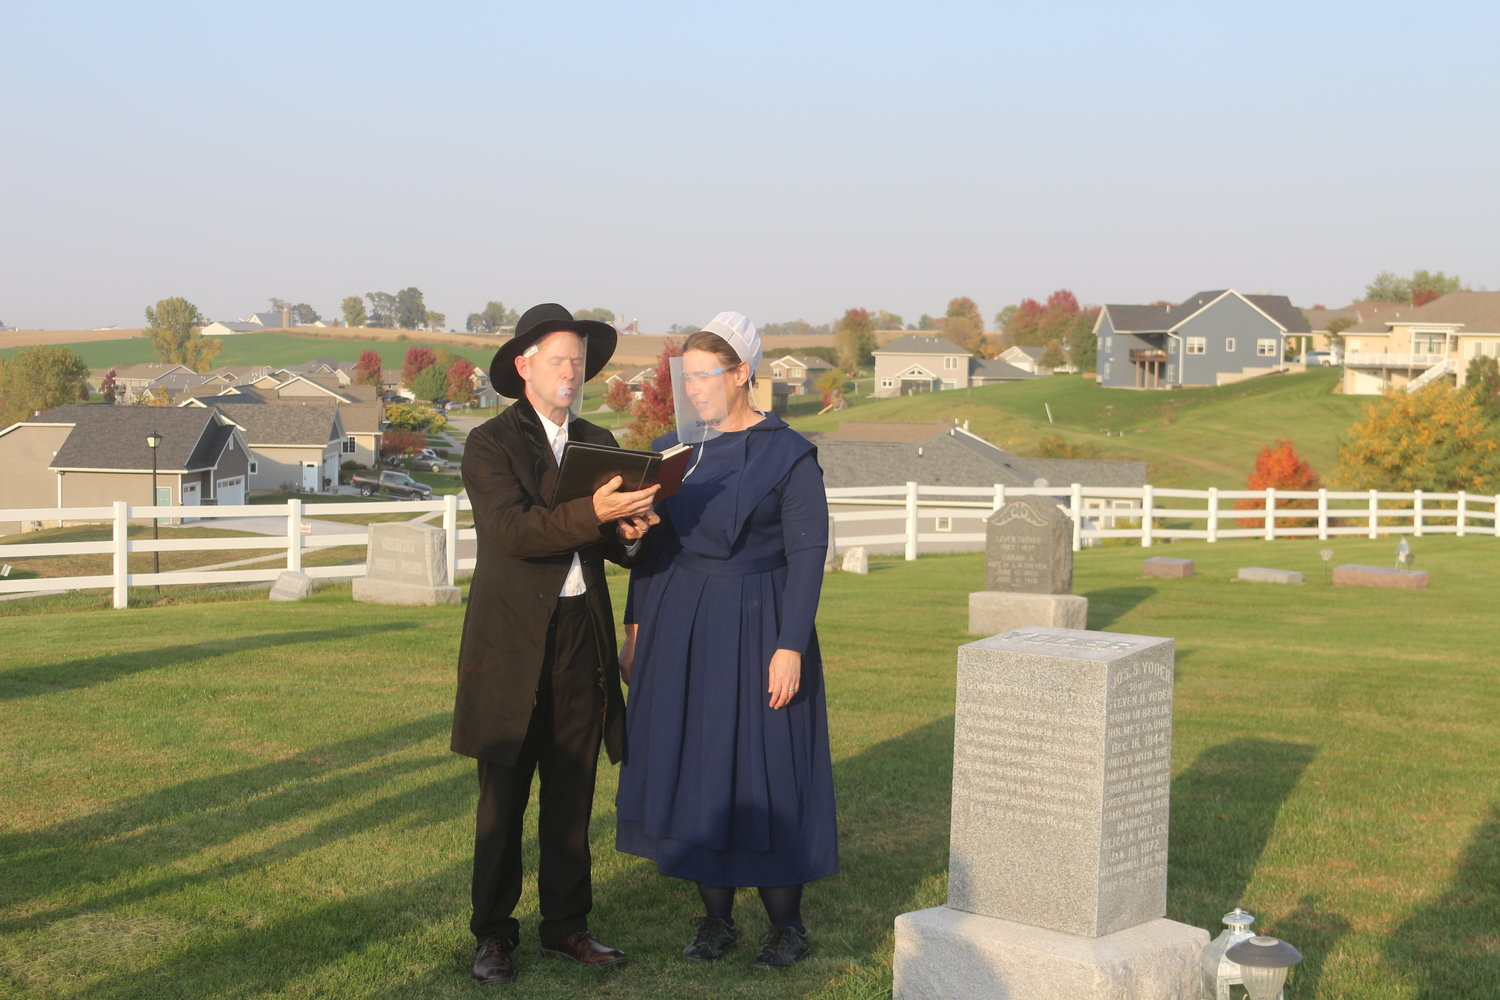 Trent and Tammy Yoder portray Joseph S. and Eliza Yoder.  Joseph S. was the first president of the Sharon Hill Cemetery board.